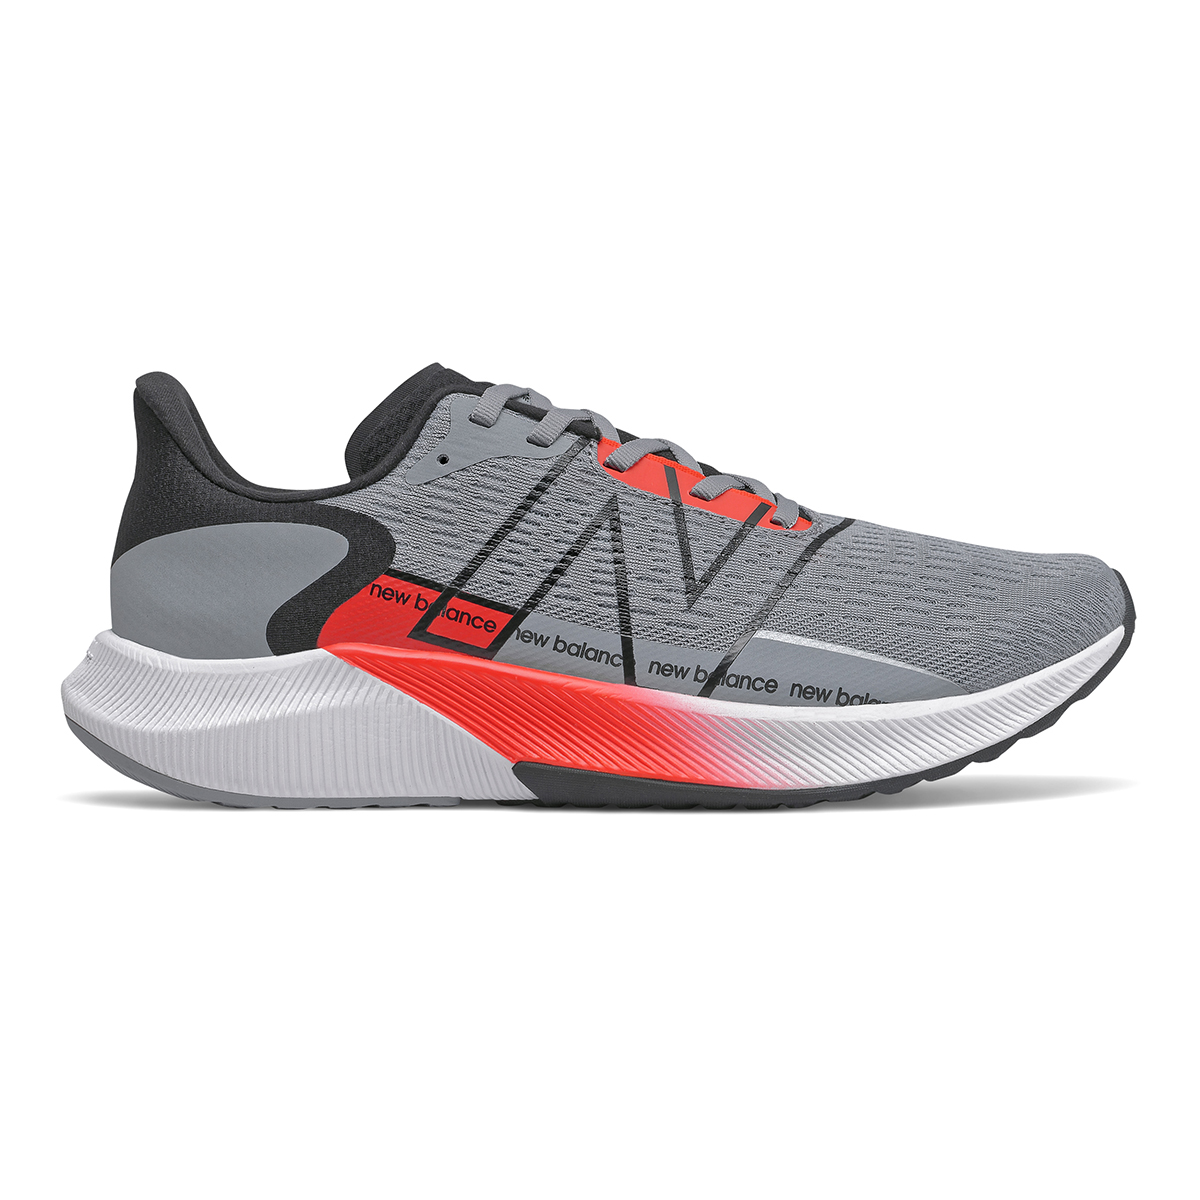 Men's New Balance Fuelcell Propel V2 Running Shoe - Color: Steel - Size: 6 - Width: Wide, Steel, large, image 1